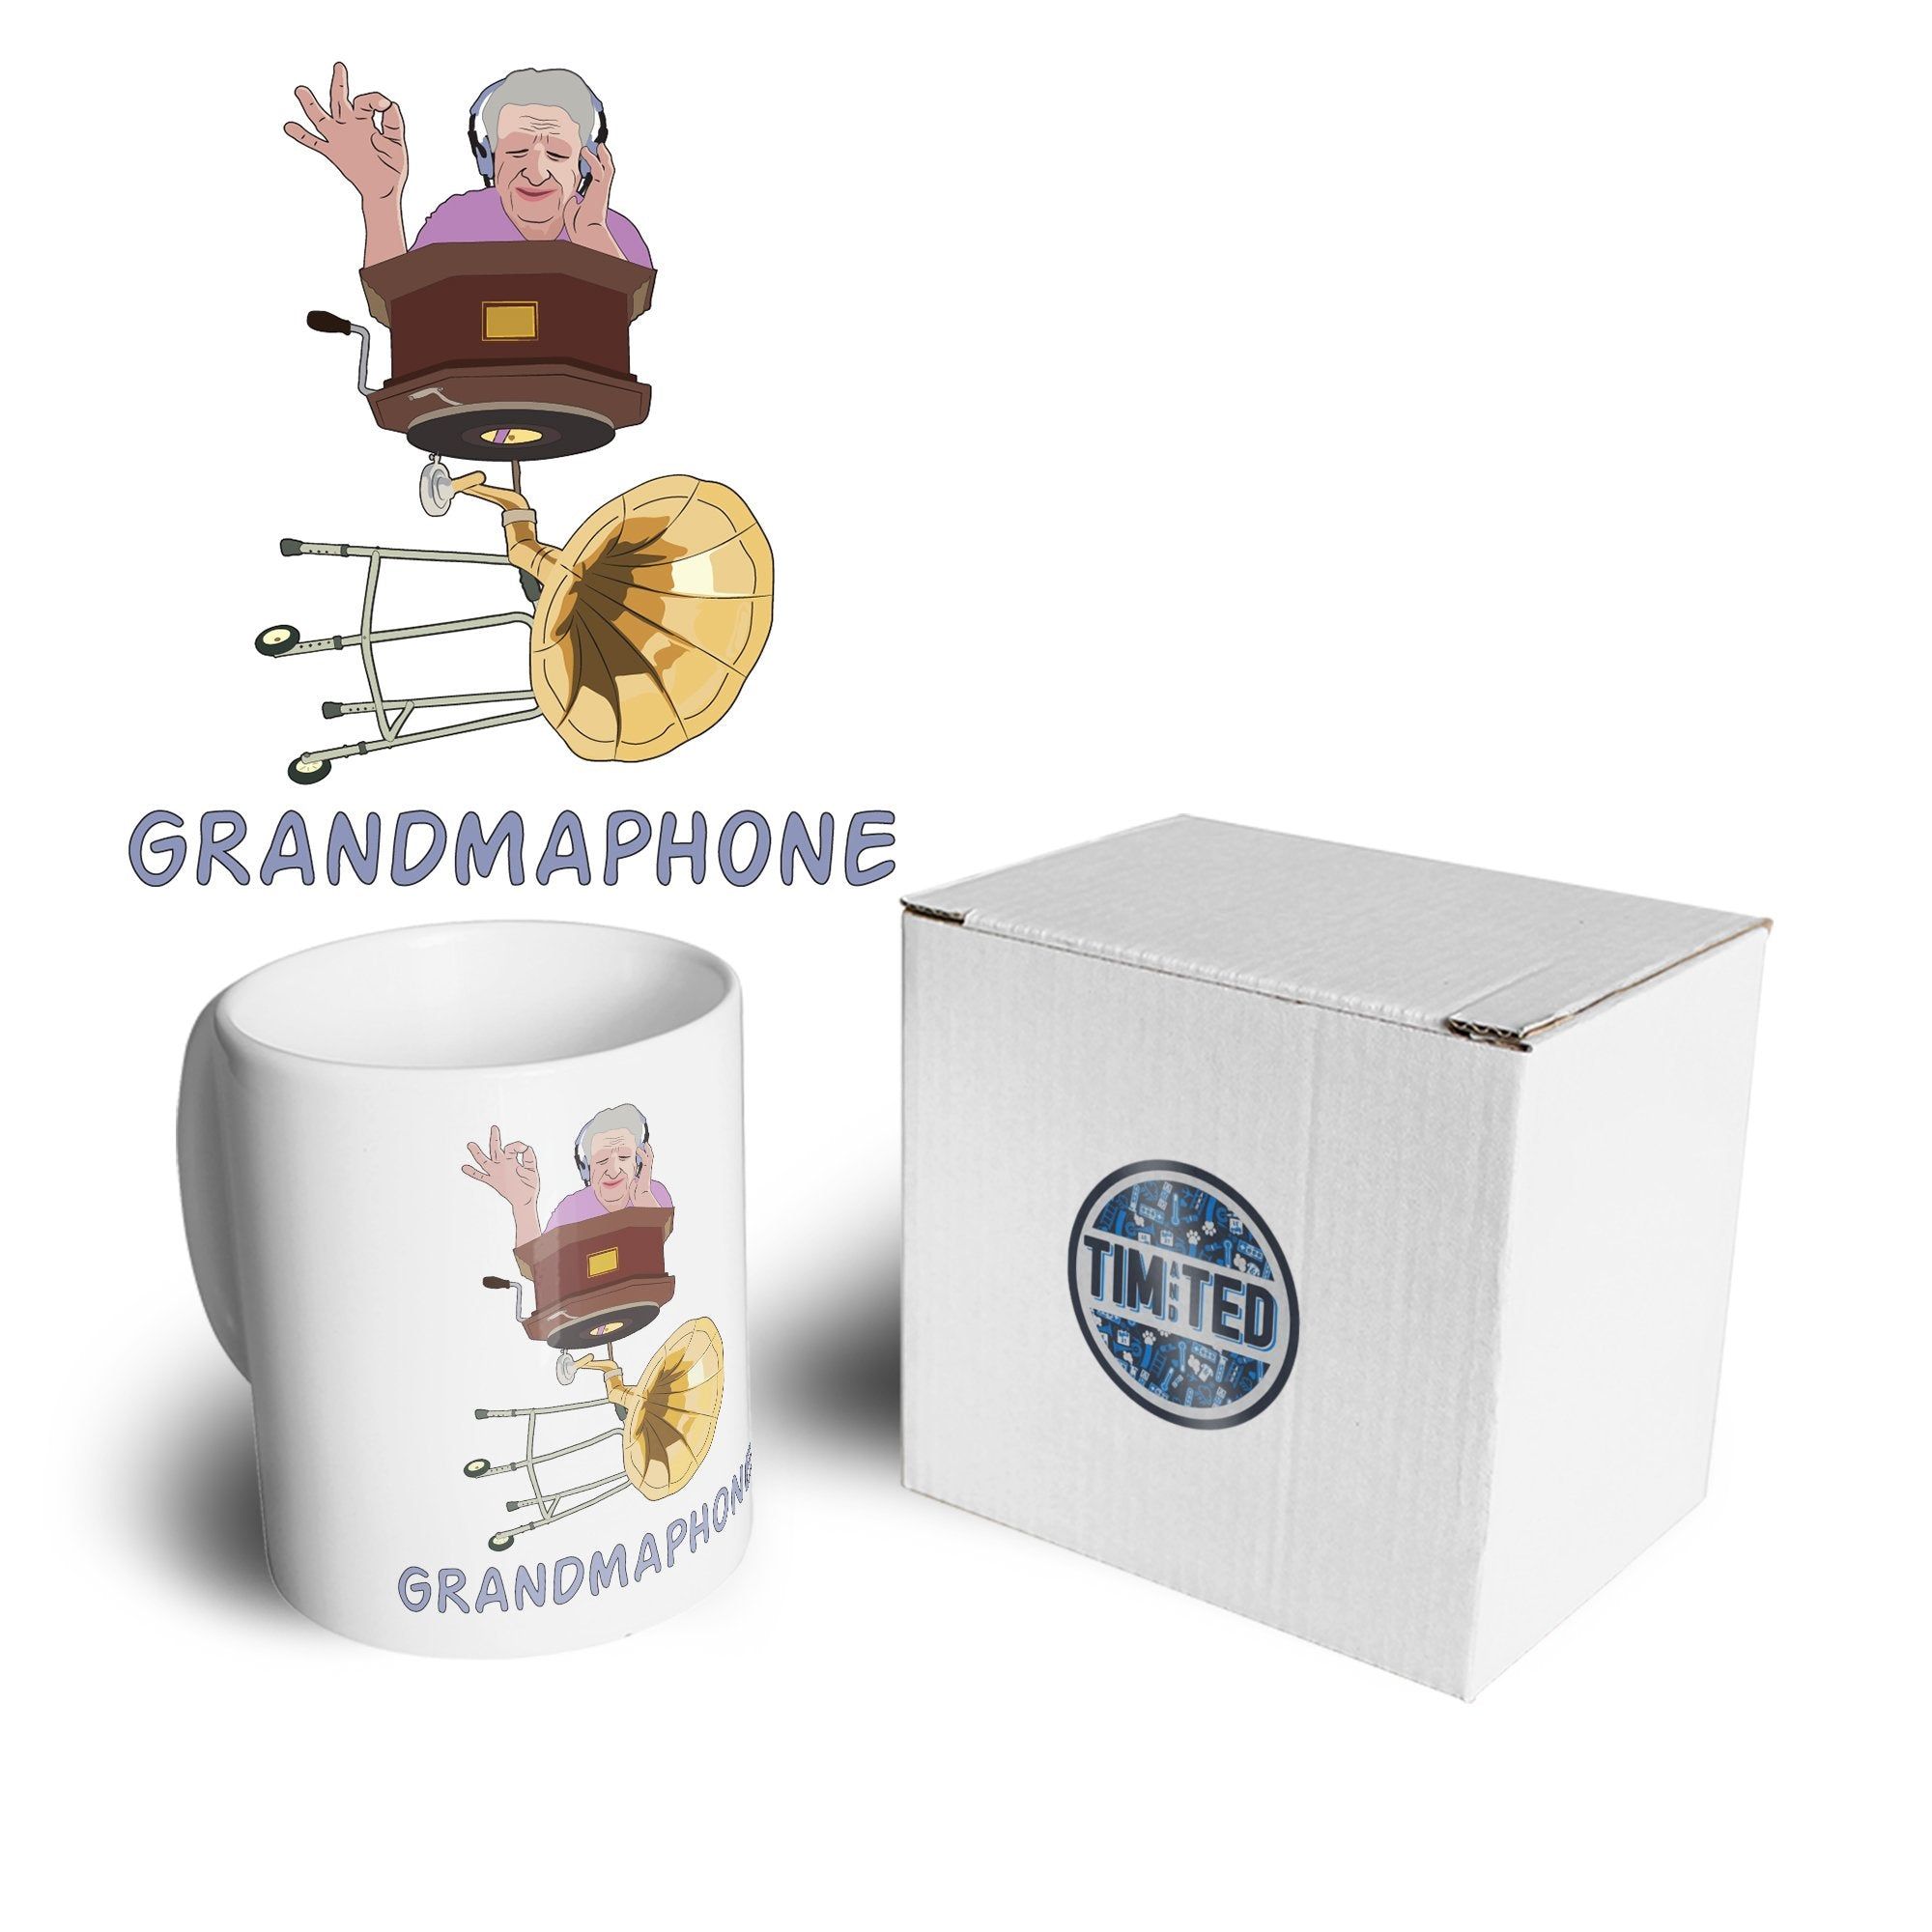 Novelty Music Mug Grandmaphone Illustration Coffee Tea Cup